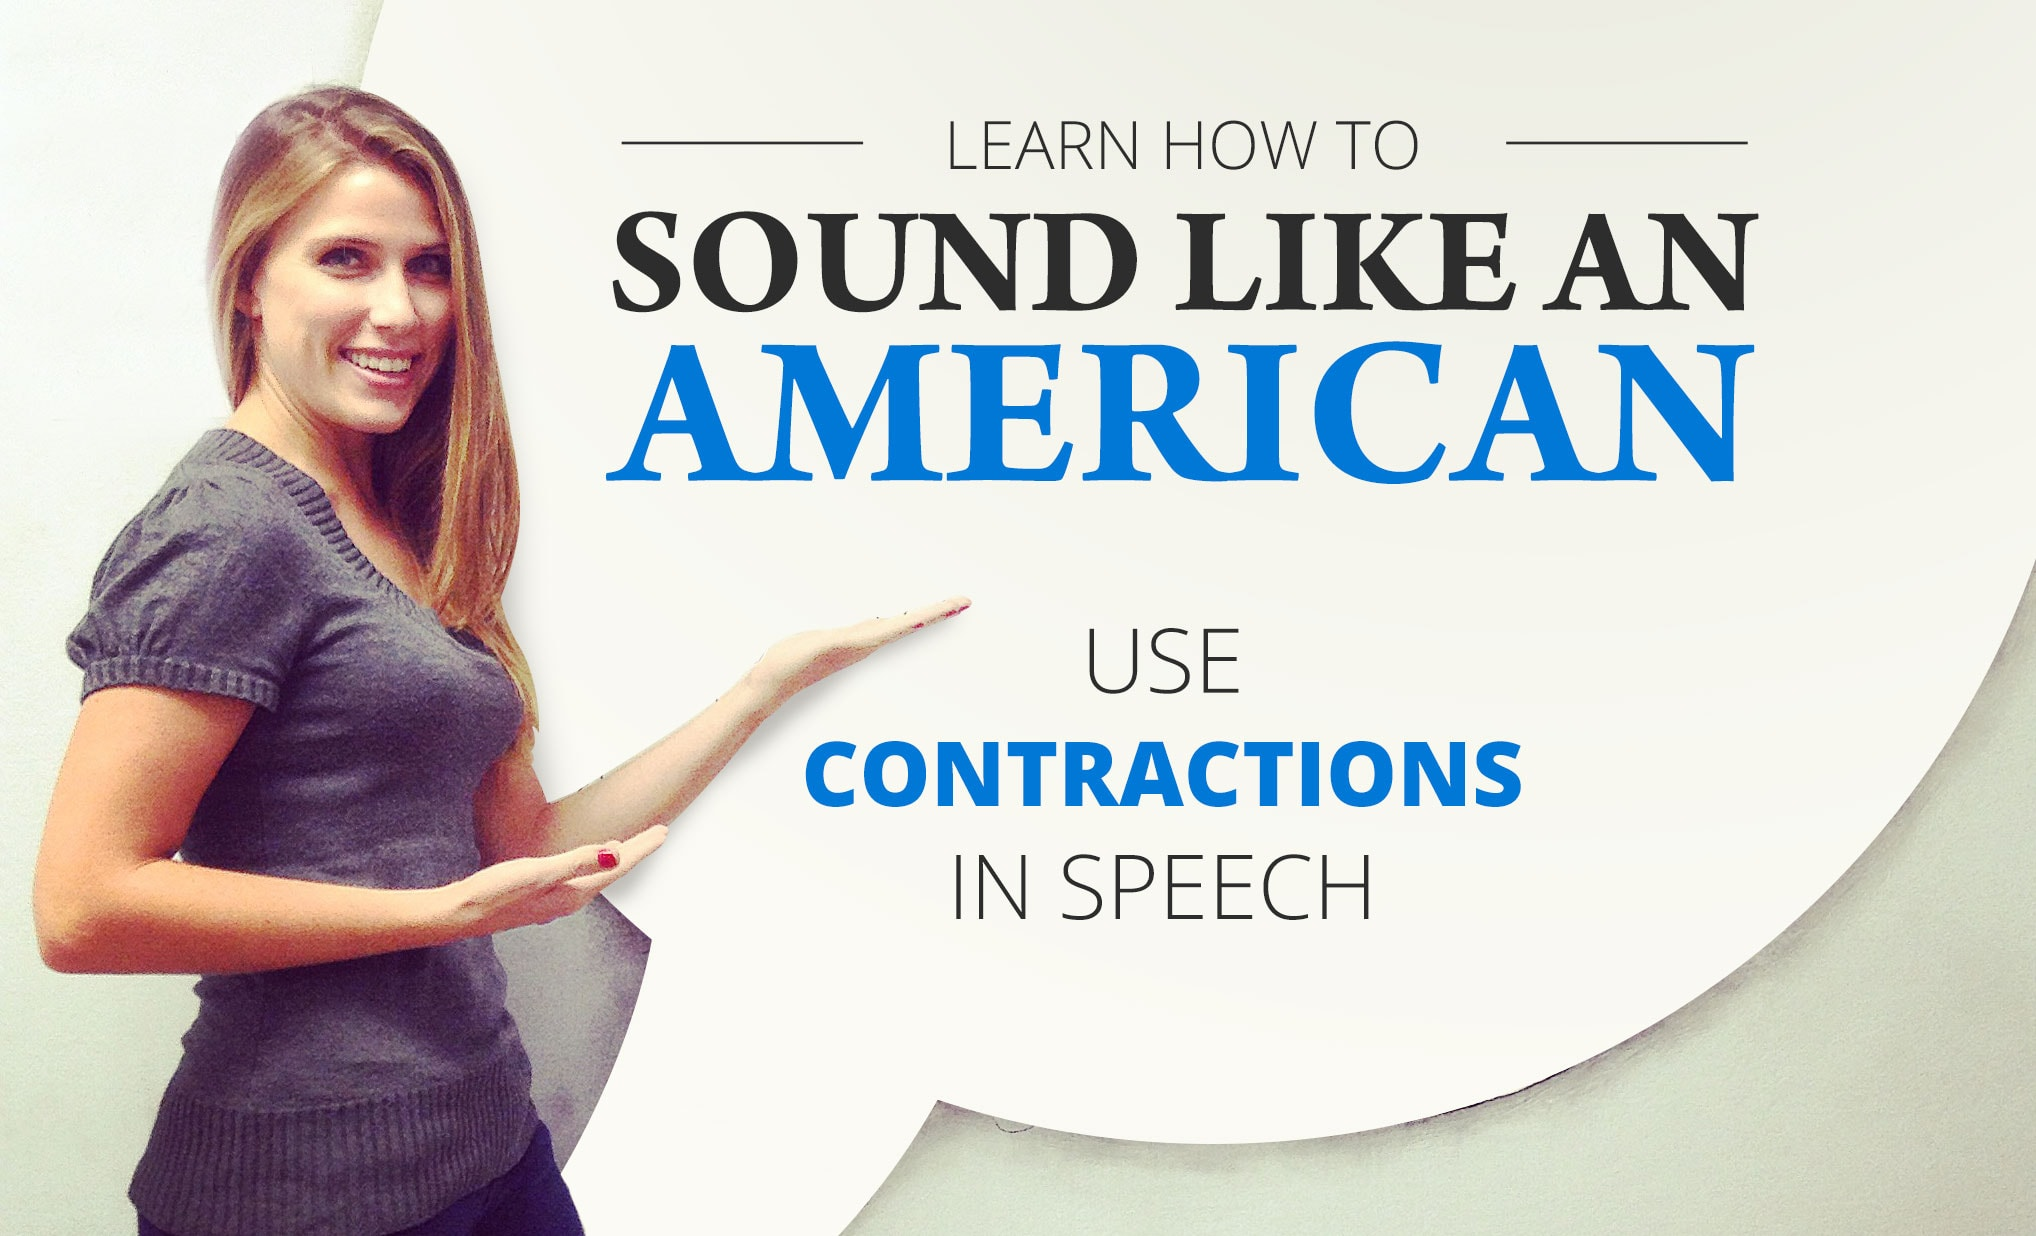 Contractions in Speech